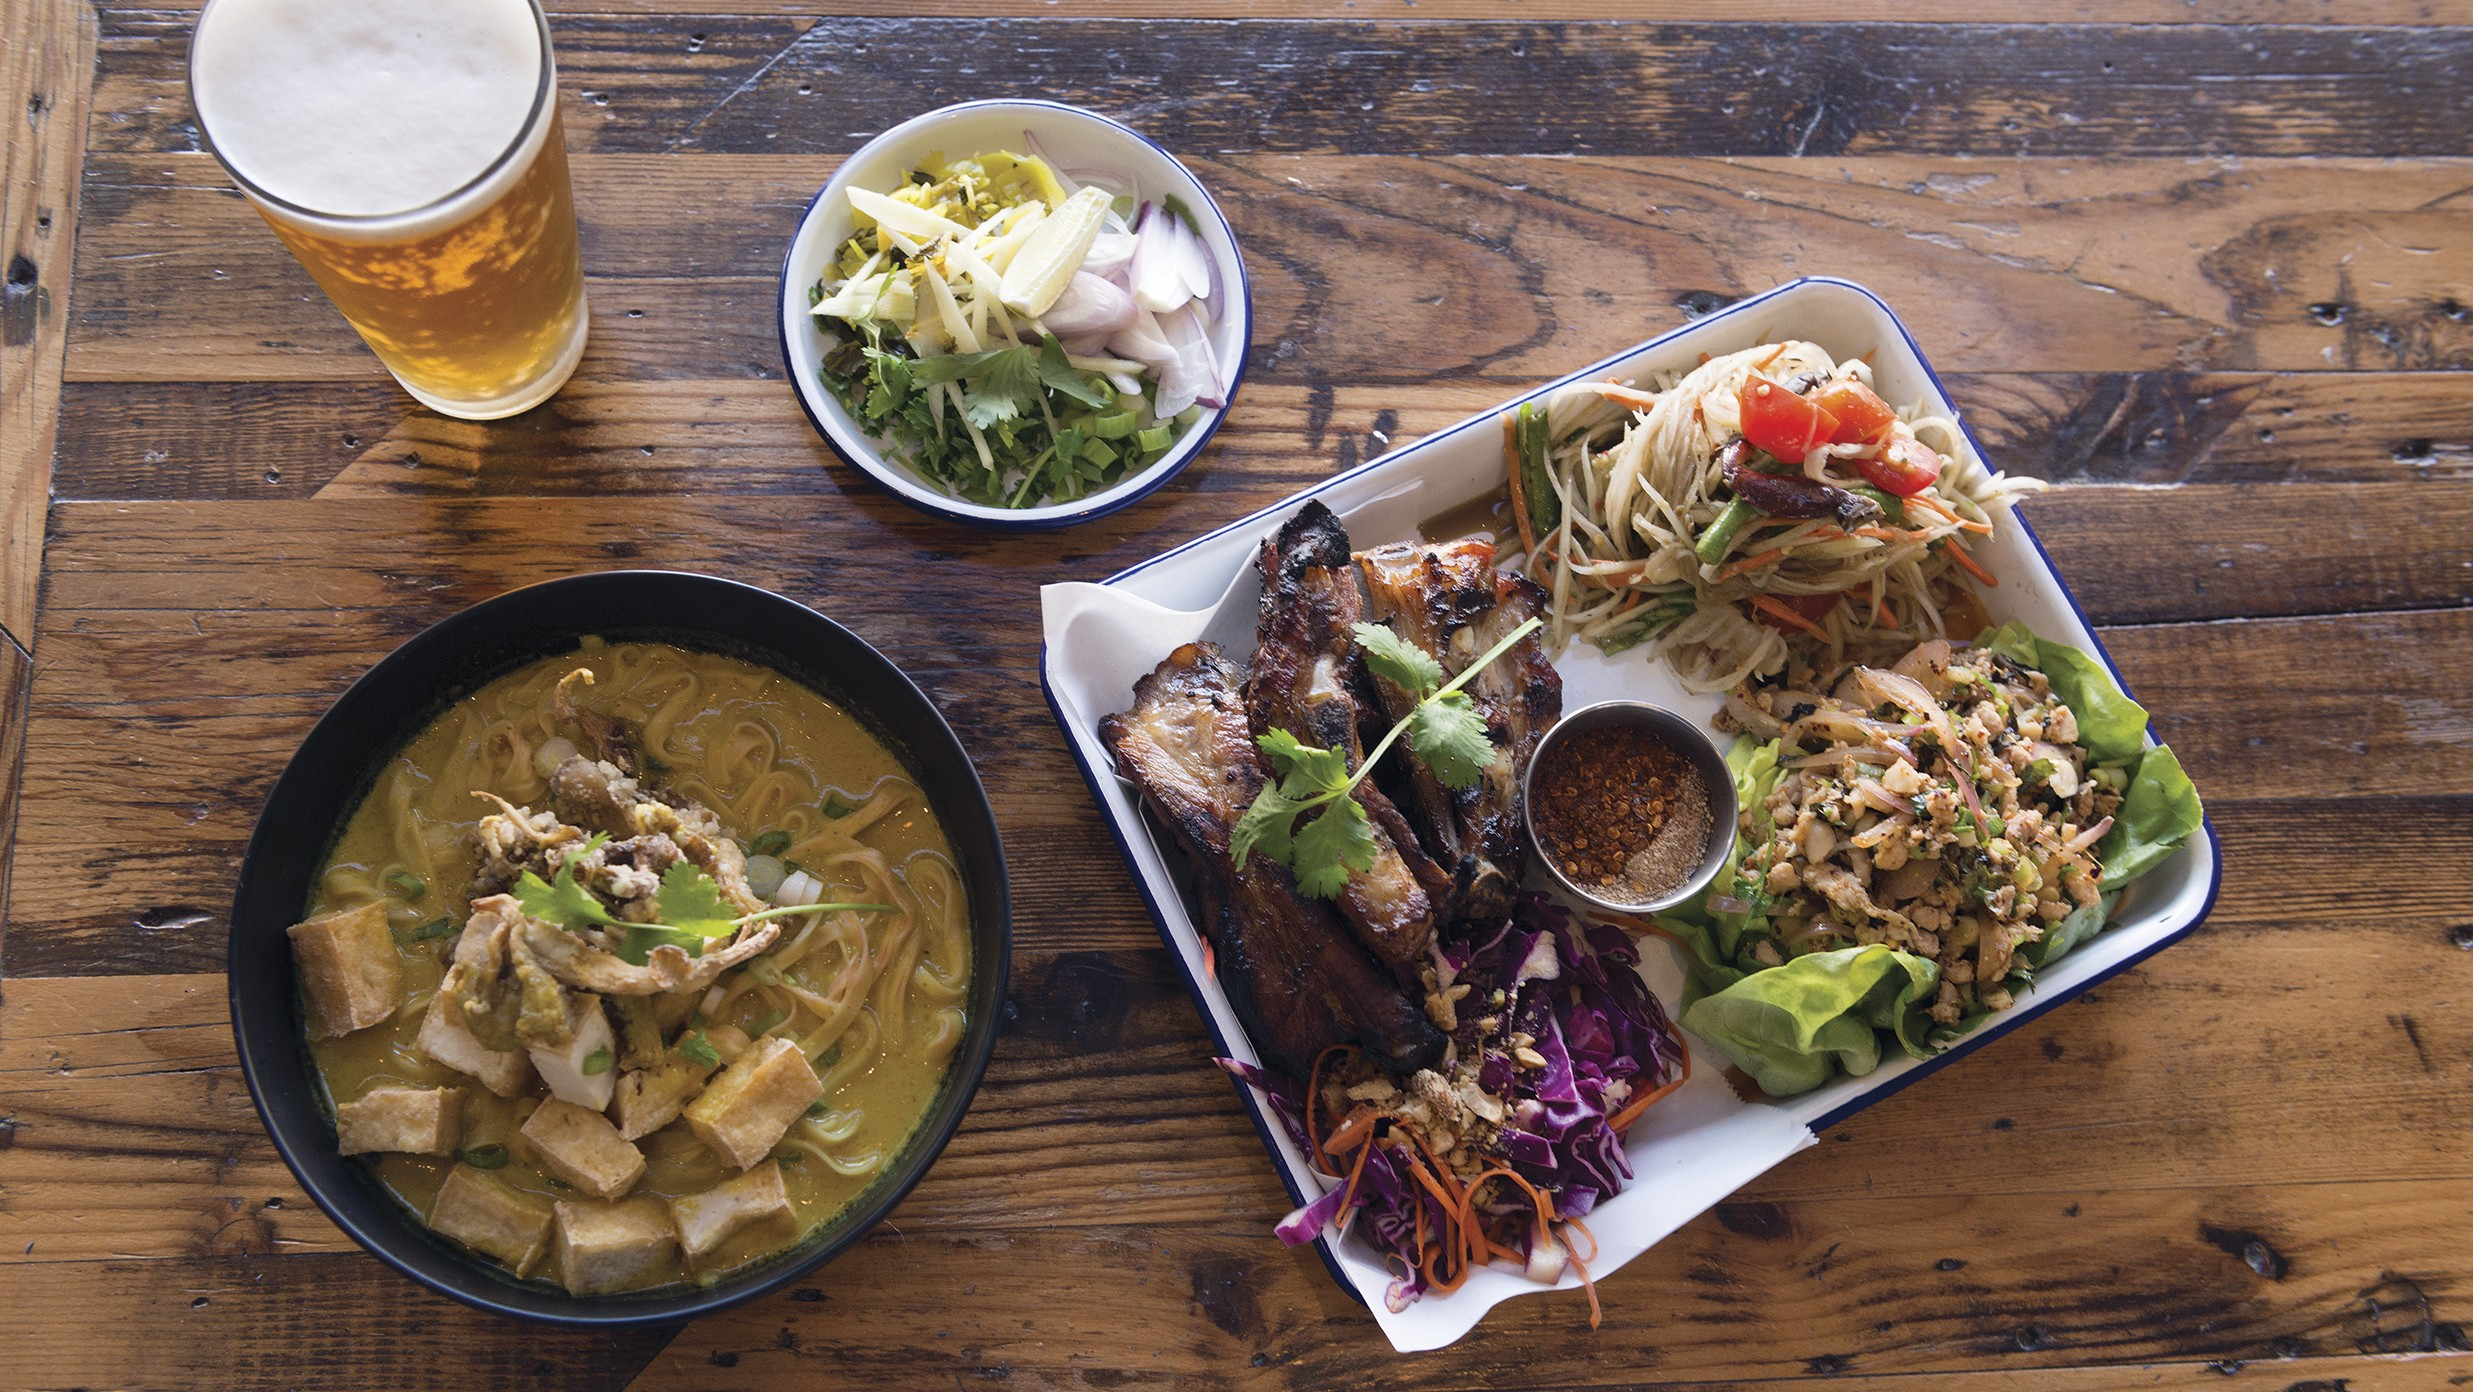 Bird Buffalo Serves Thai Soul Food With Mixed Results